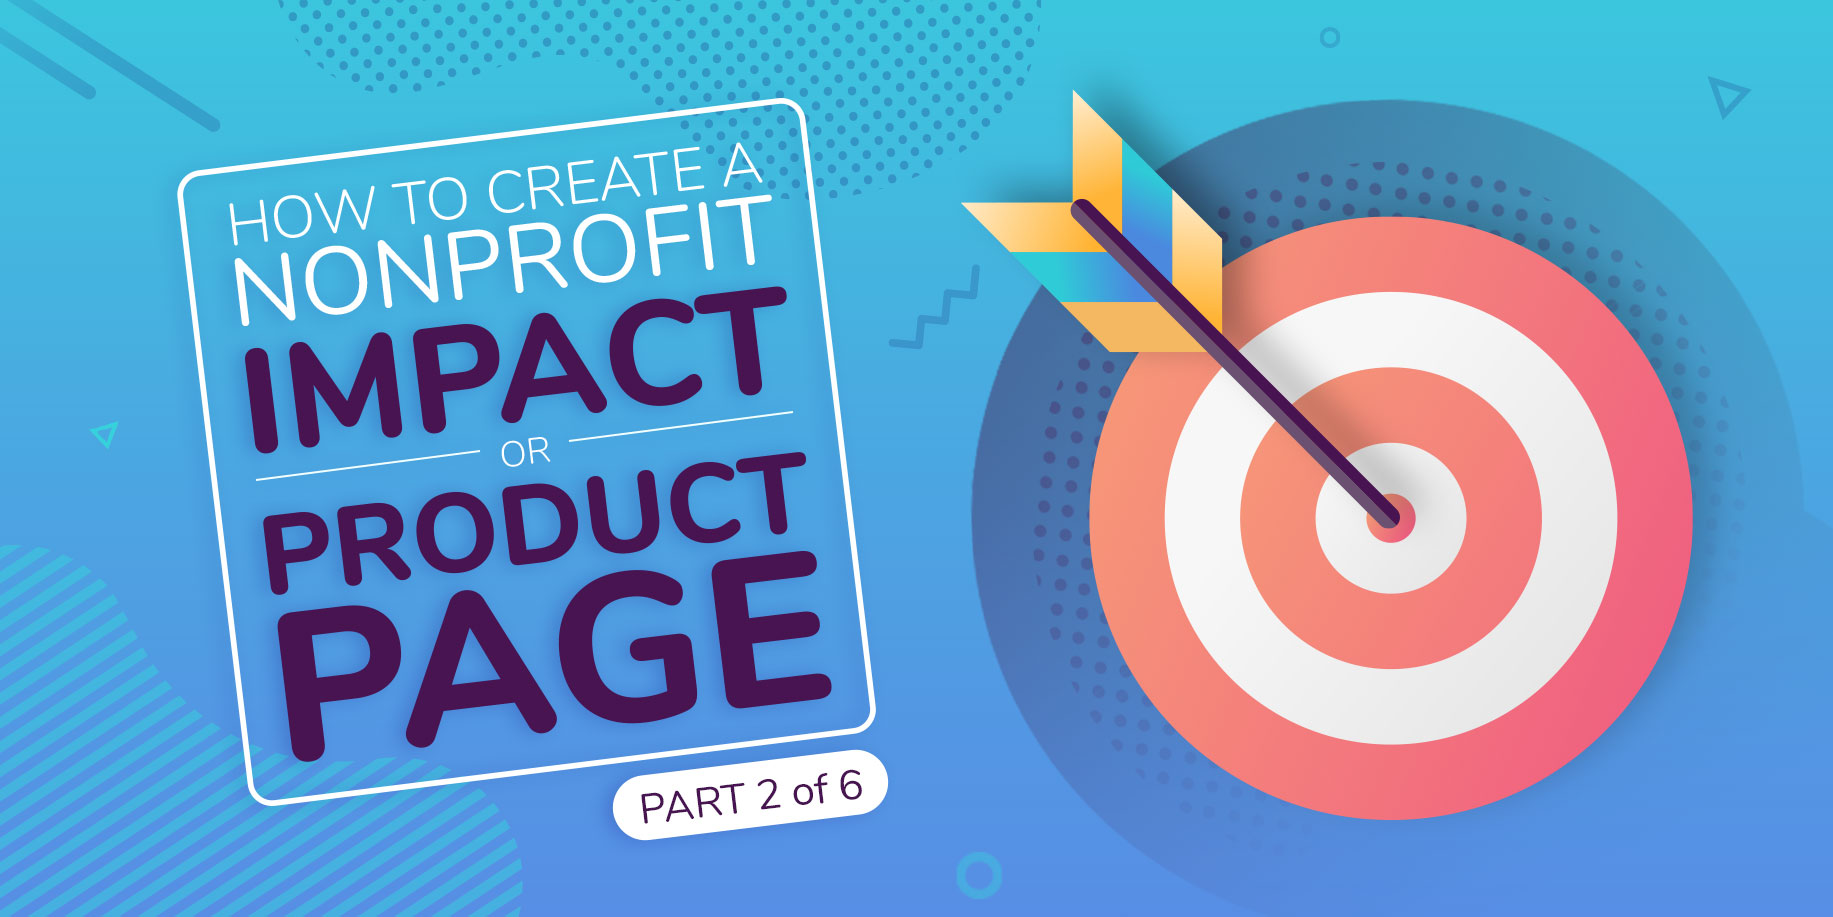 How to create a nonprofit website impact page or product page